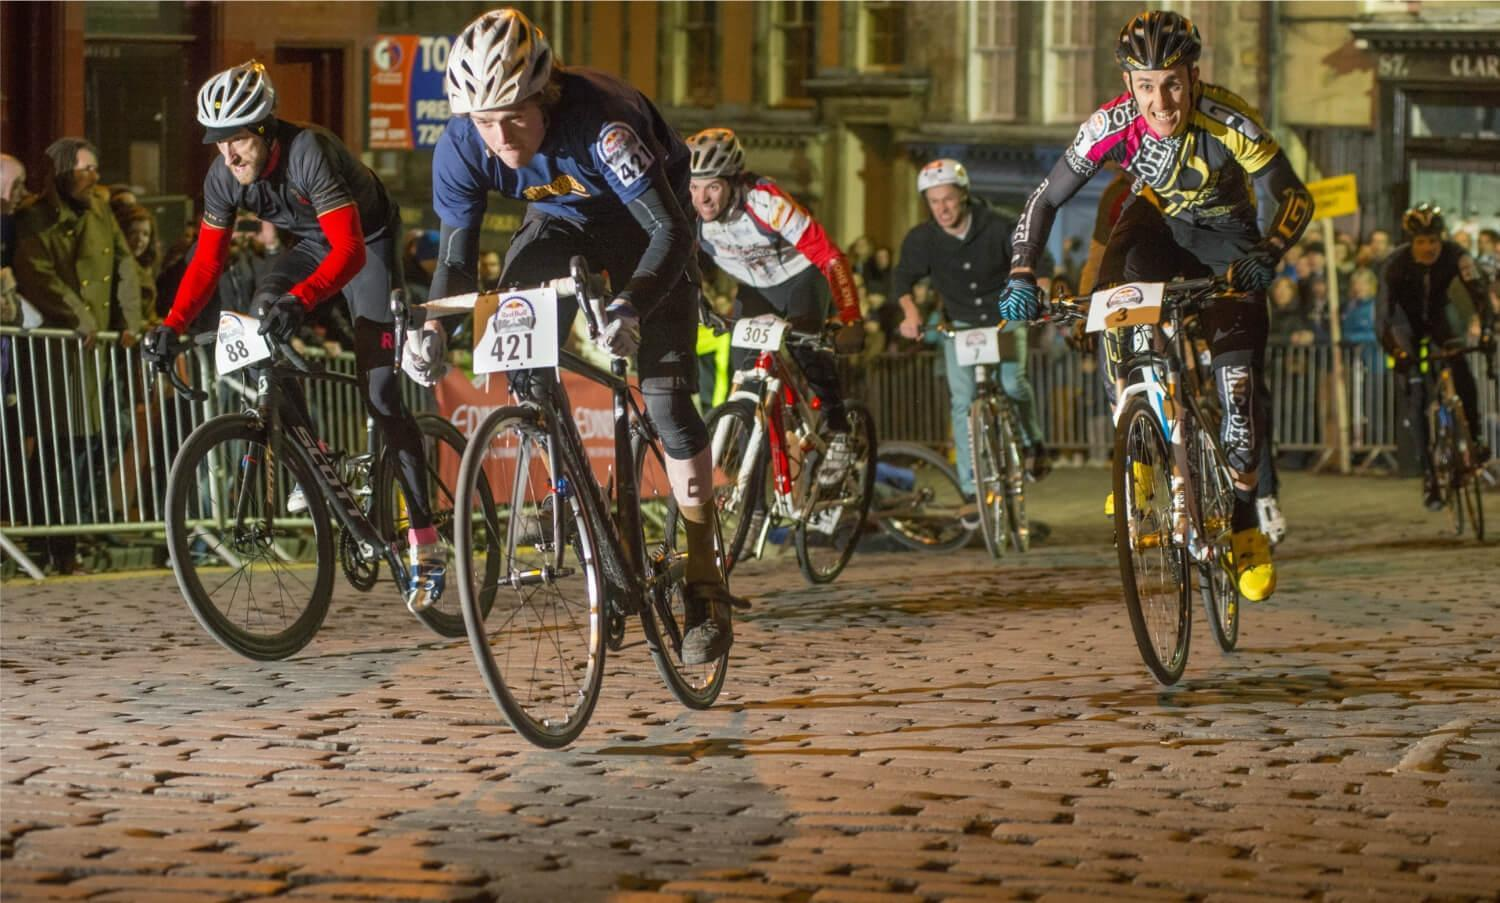 Five participants of Red Bull Hill Chasers event cycling up a cobbled street in Edinburgh with spectators on either side of the road behind metal barriers.